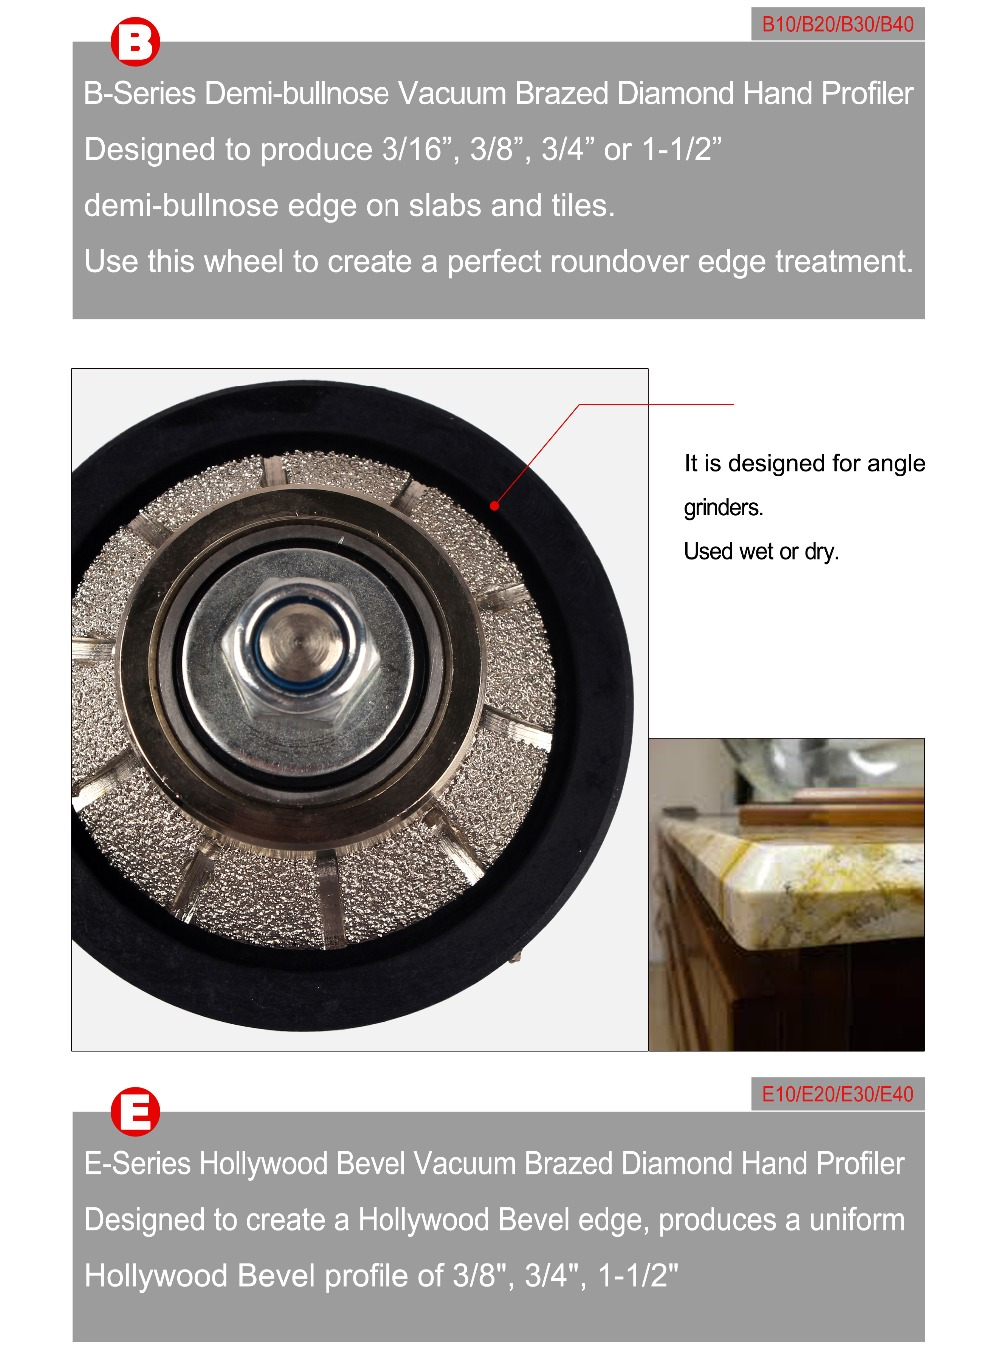 "Full Bullnose Vacuum Brazed Granite Diamond Profile Wheel Marble Hand Profiling Wheels 5/8""-11"